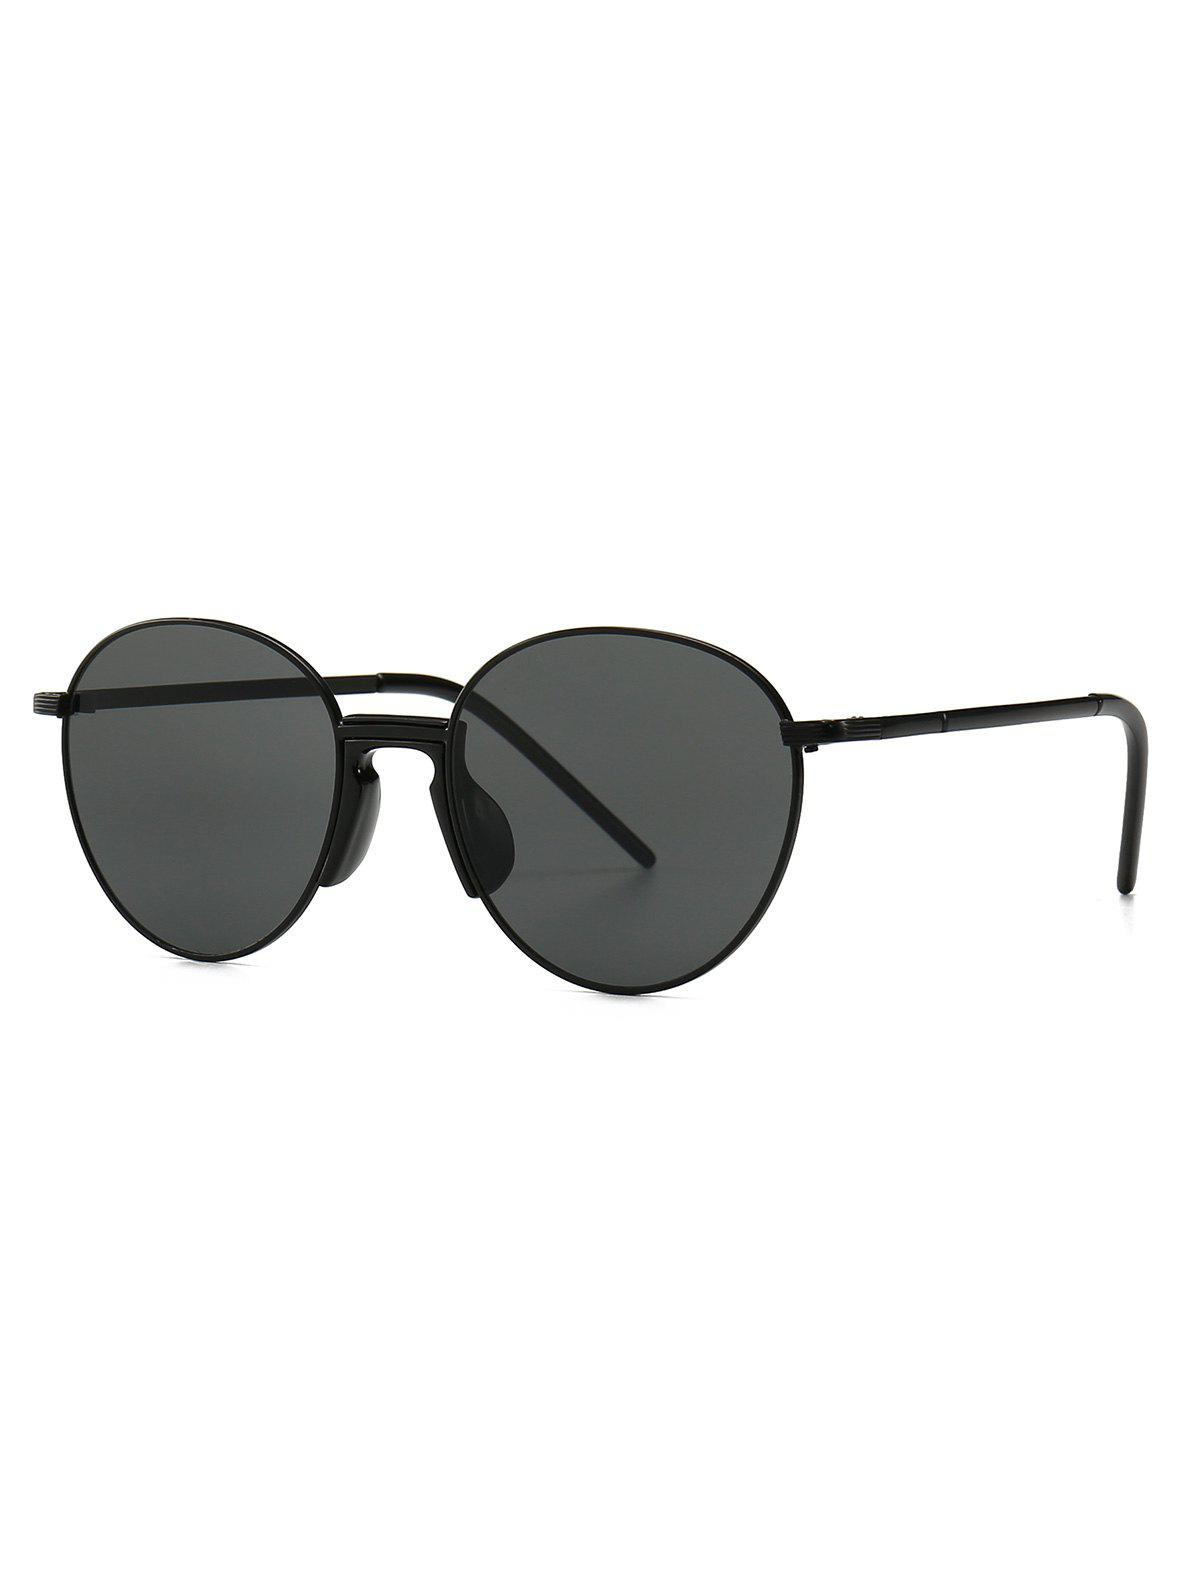 Discount Metal Vintage Round Sunglasses